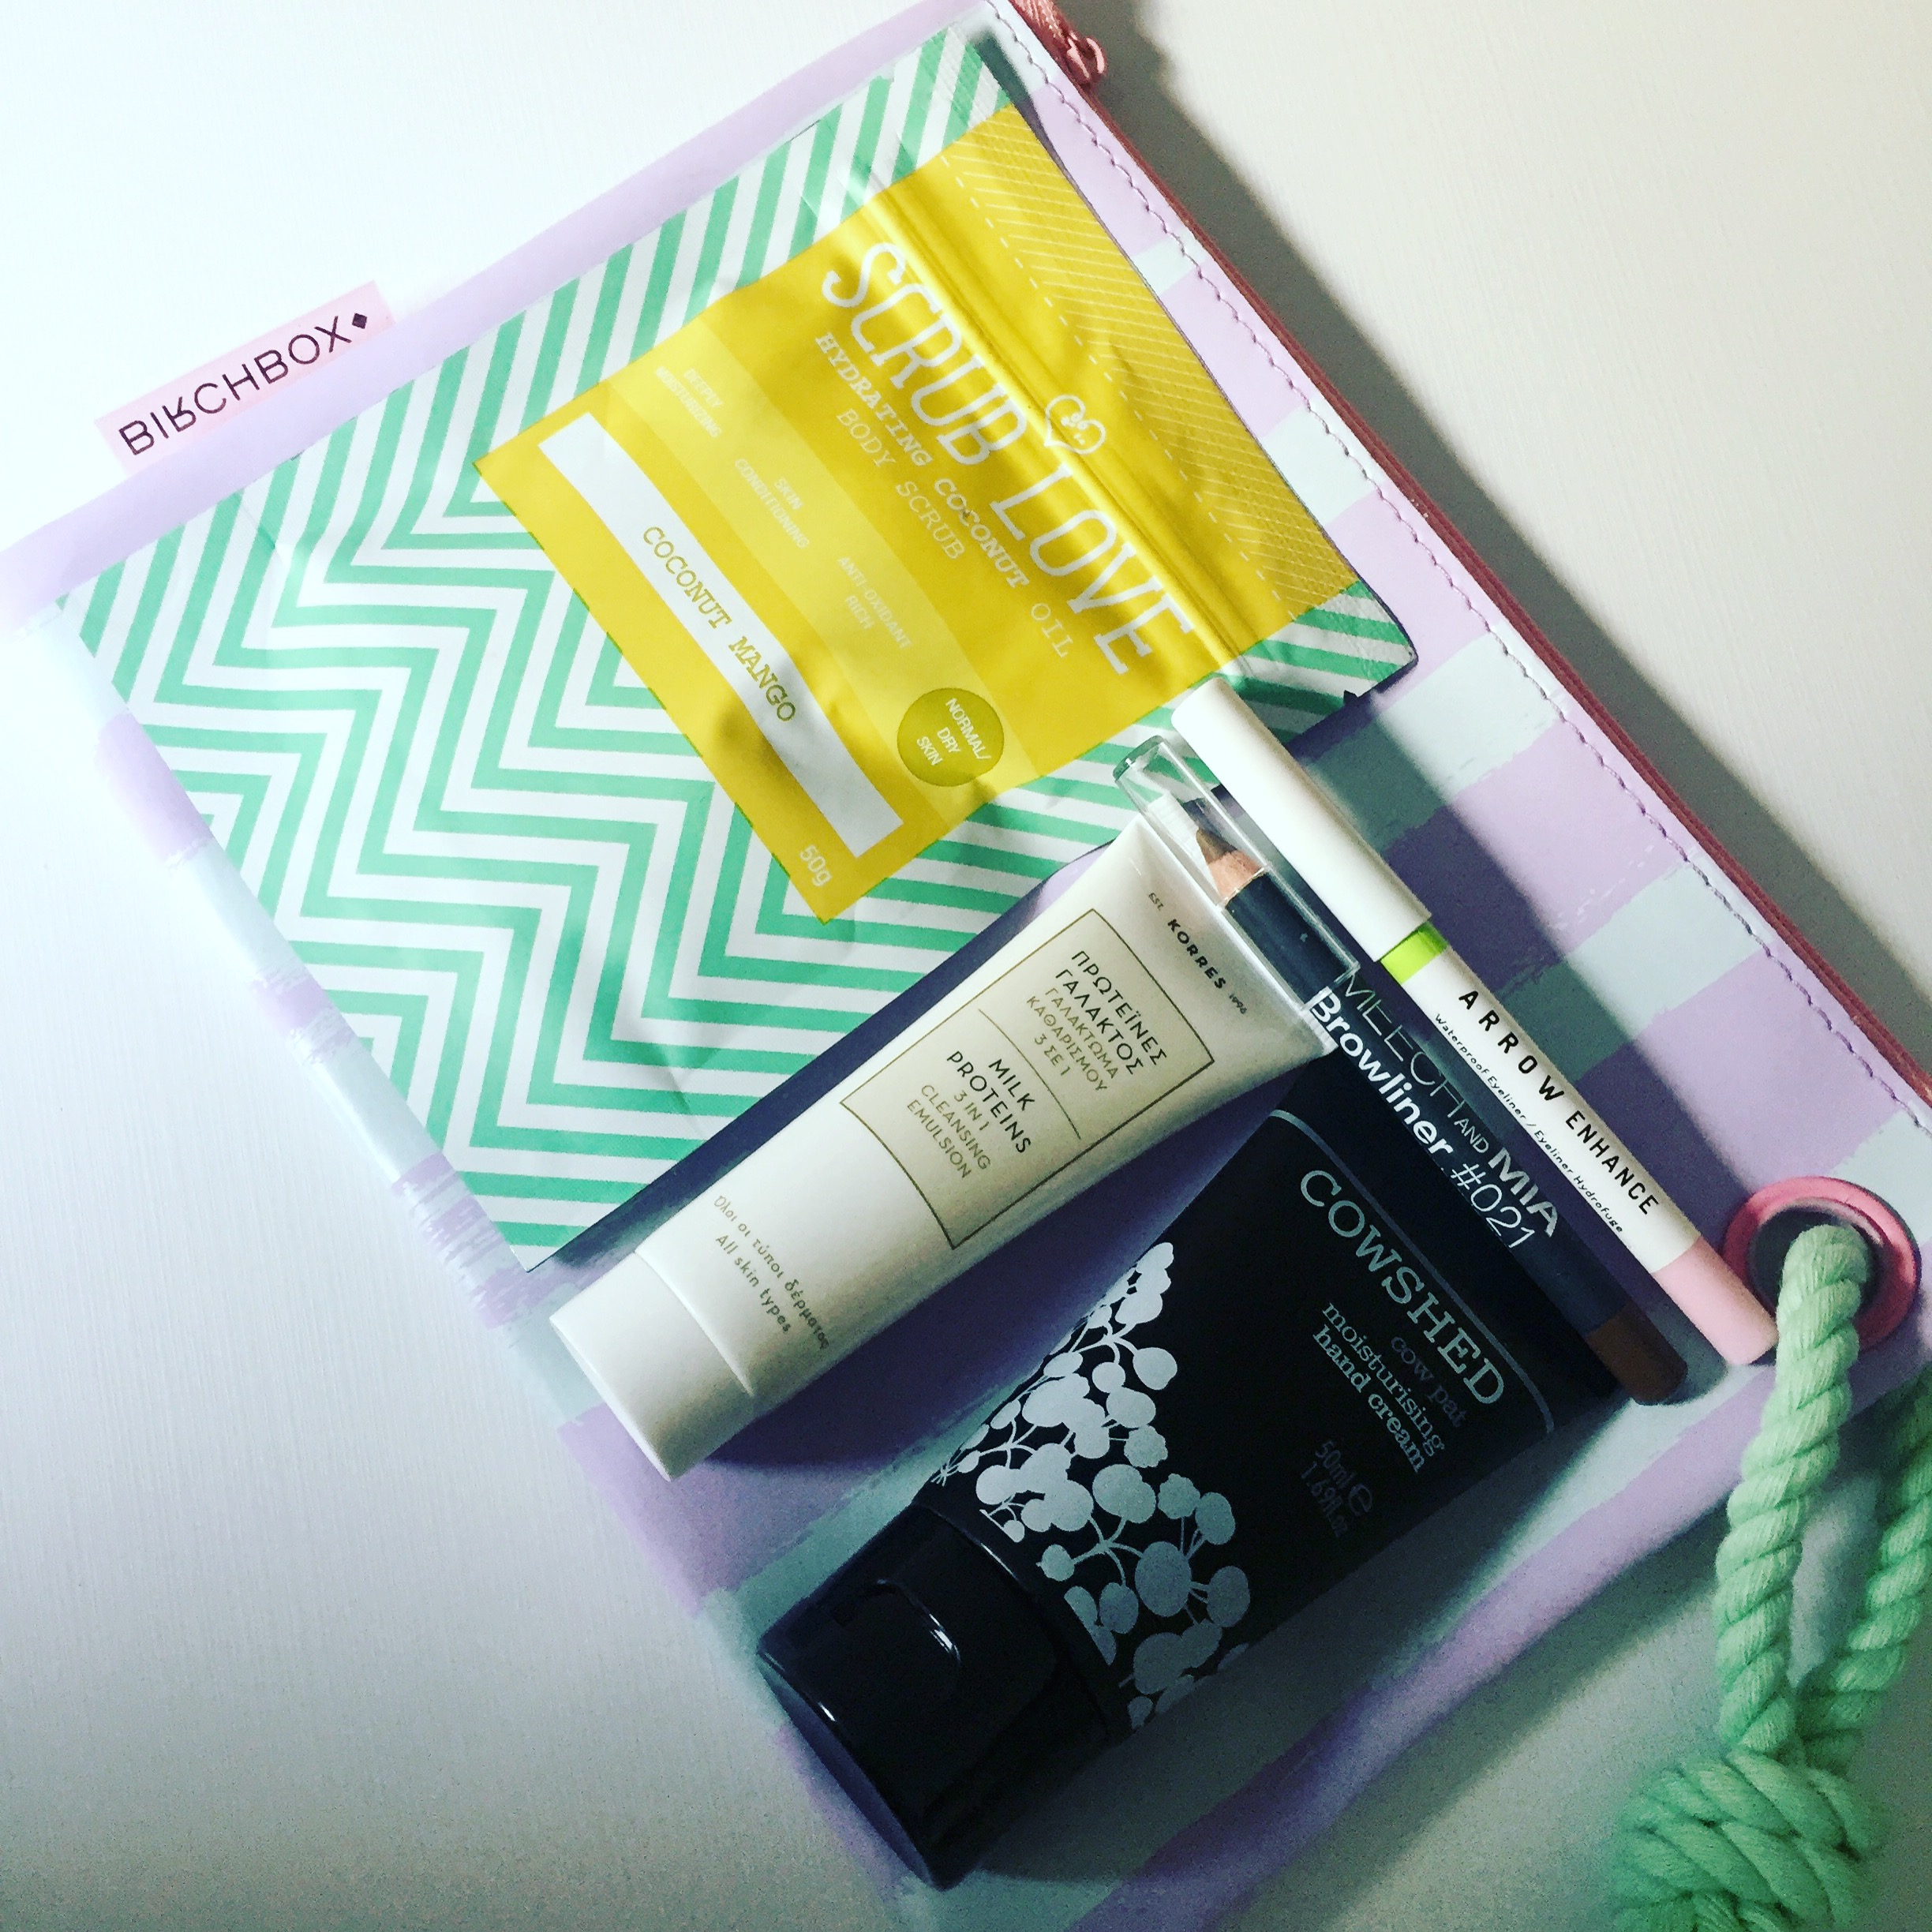 Beautybox June 2